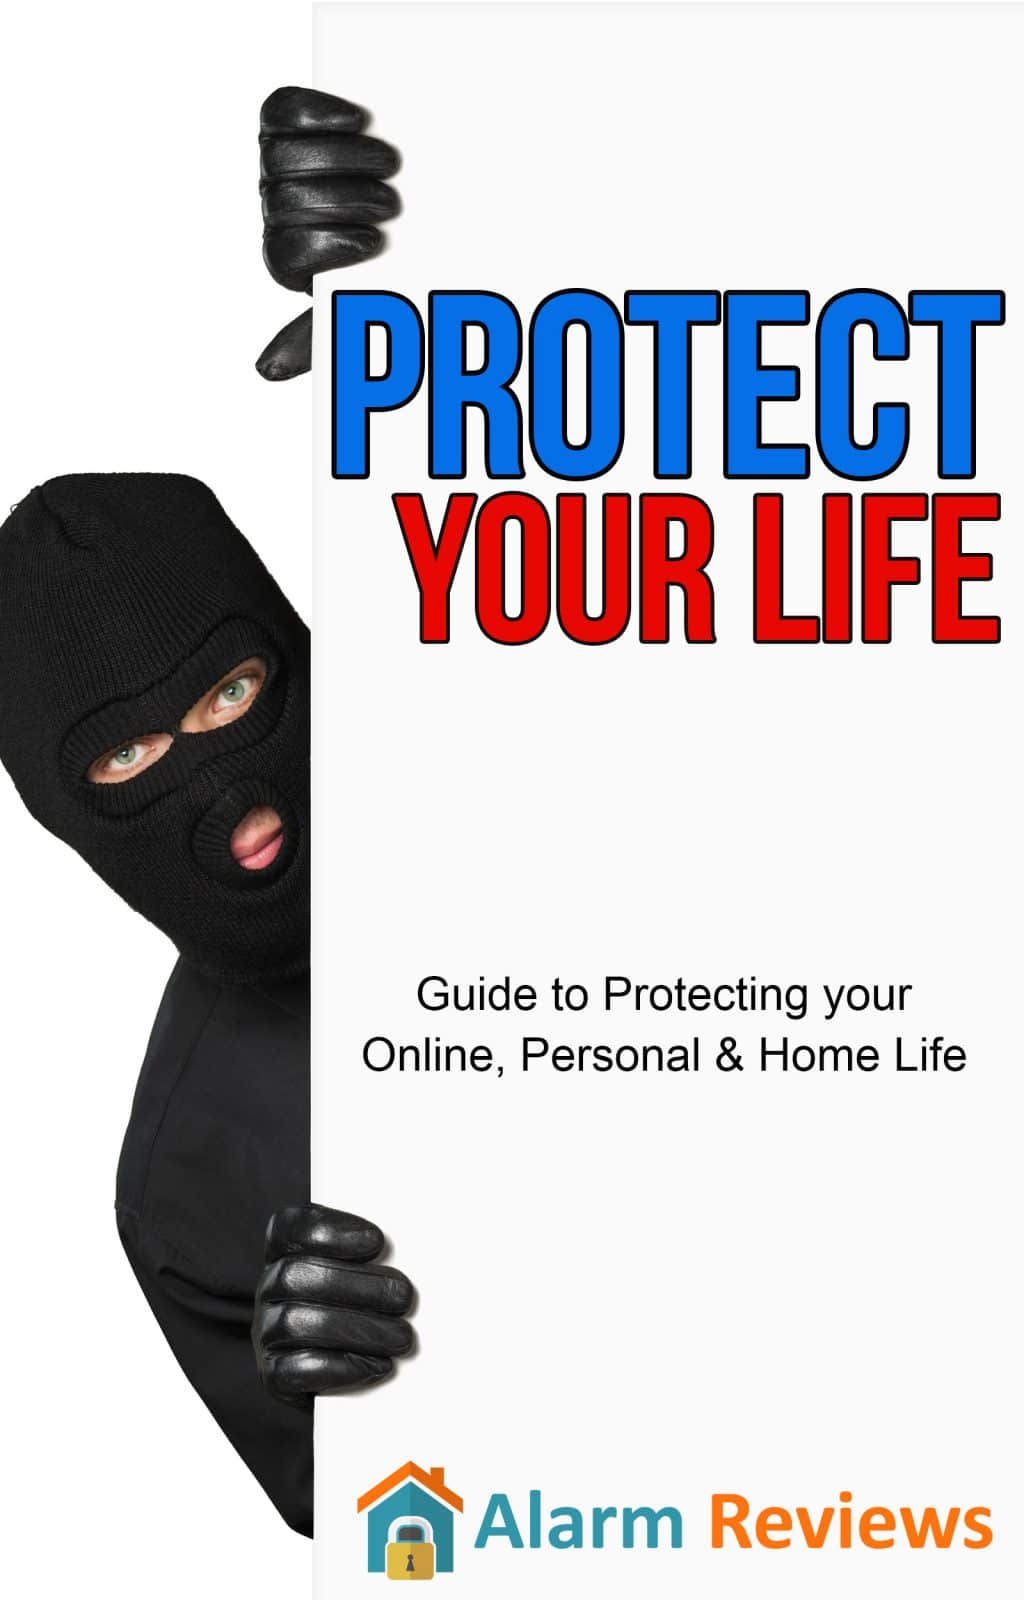 FREE Secure My Life Guide